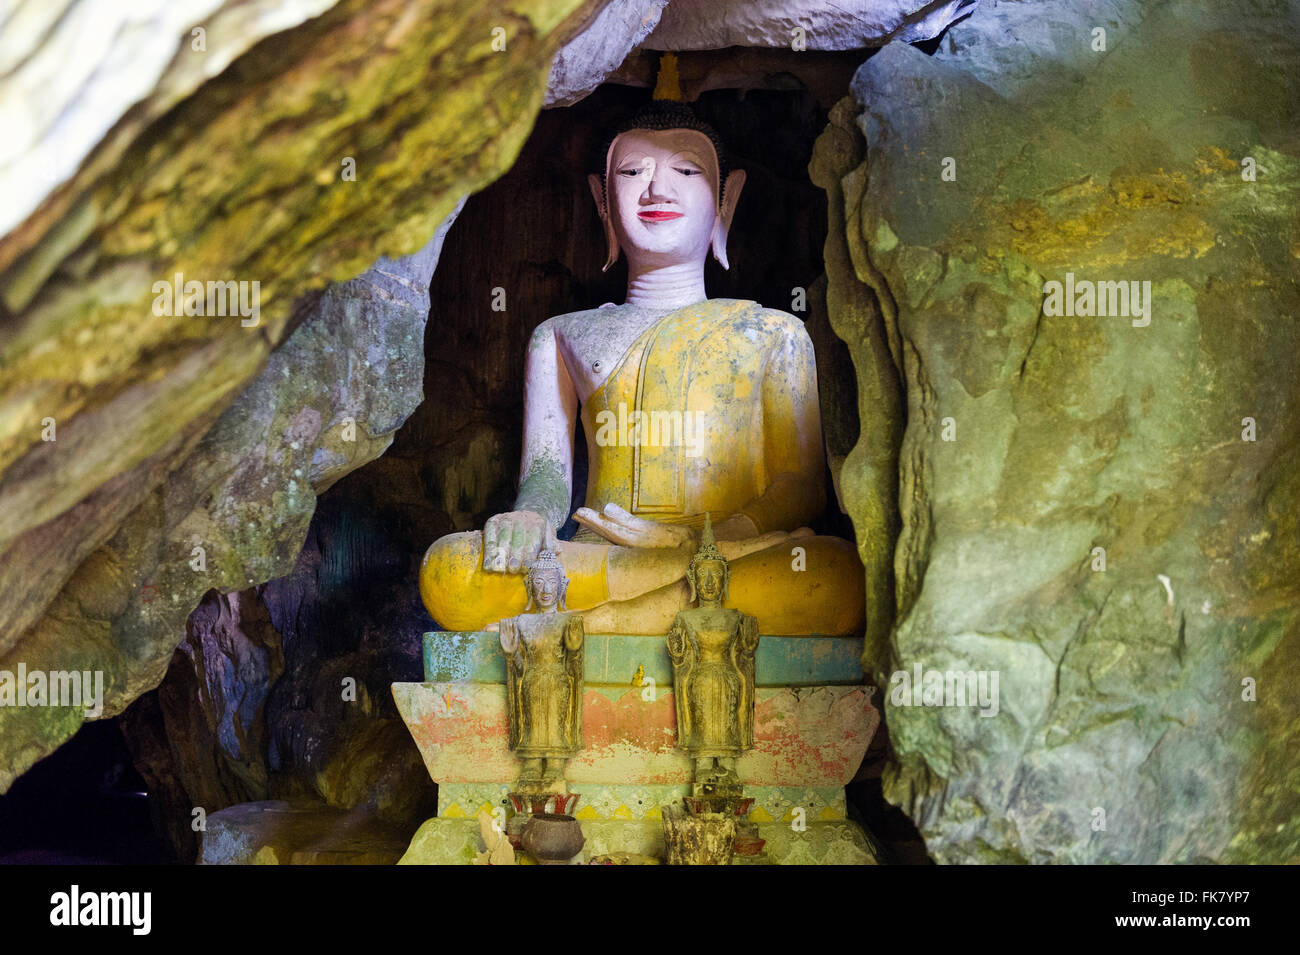 Asia. South-East Asia. Laos. Province of Vang Vieng. Buddha hidden in the Tham Sang Caves. - Stock Image